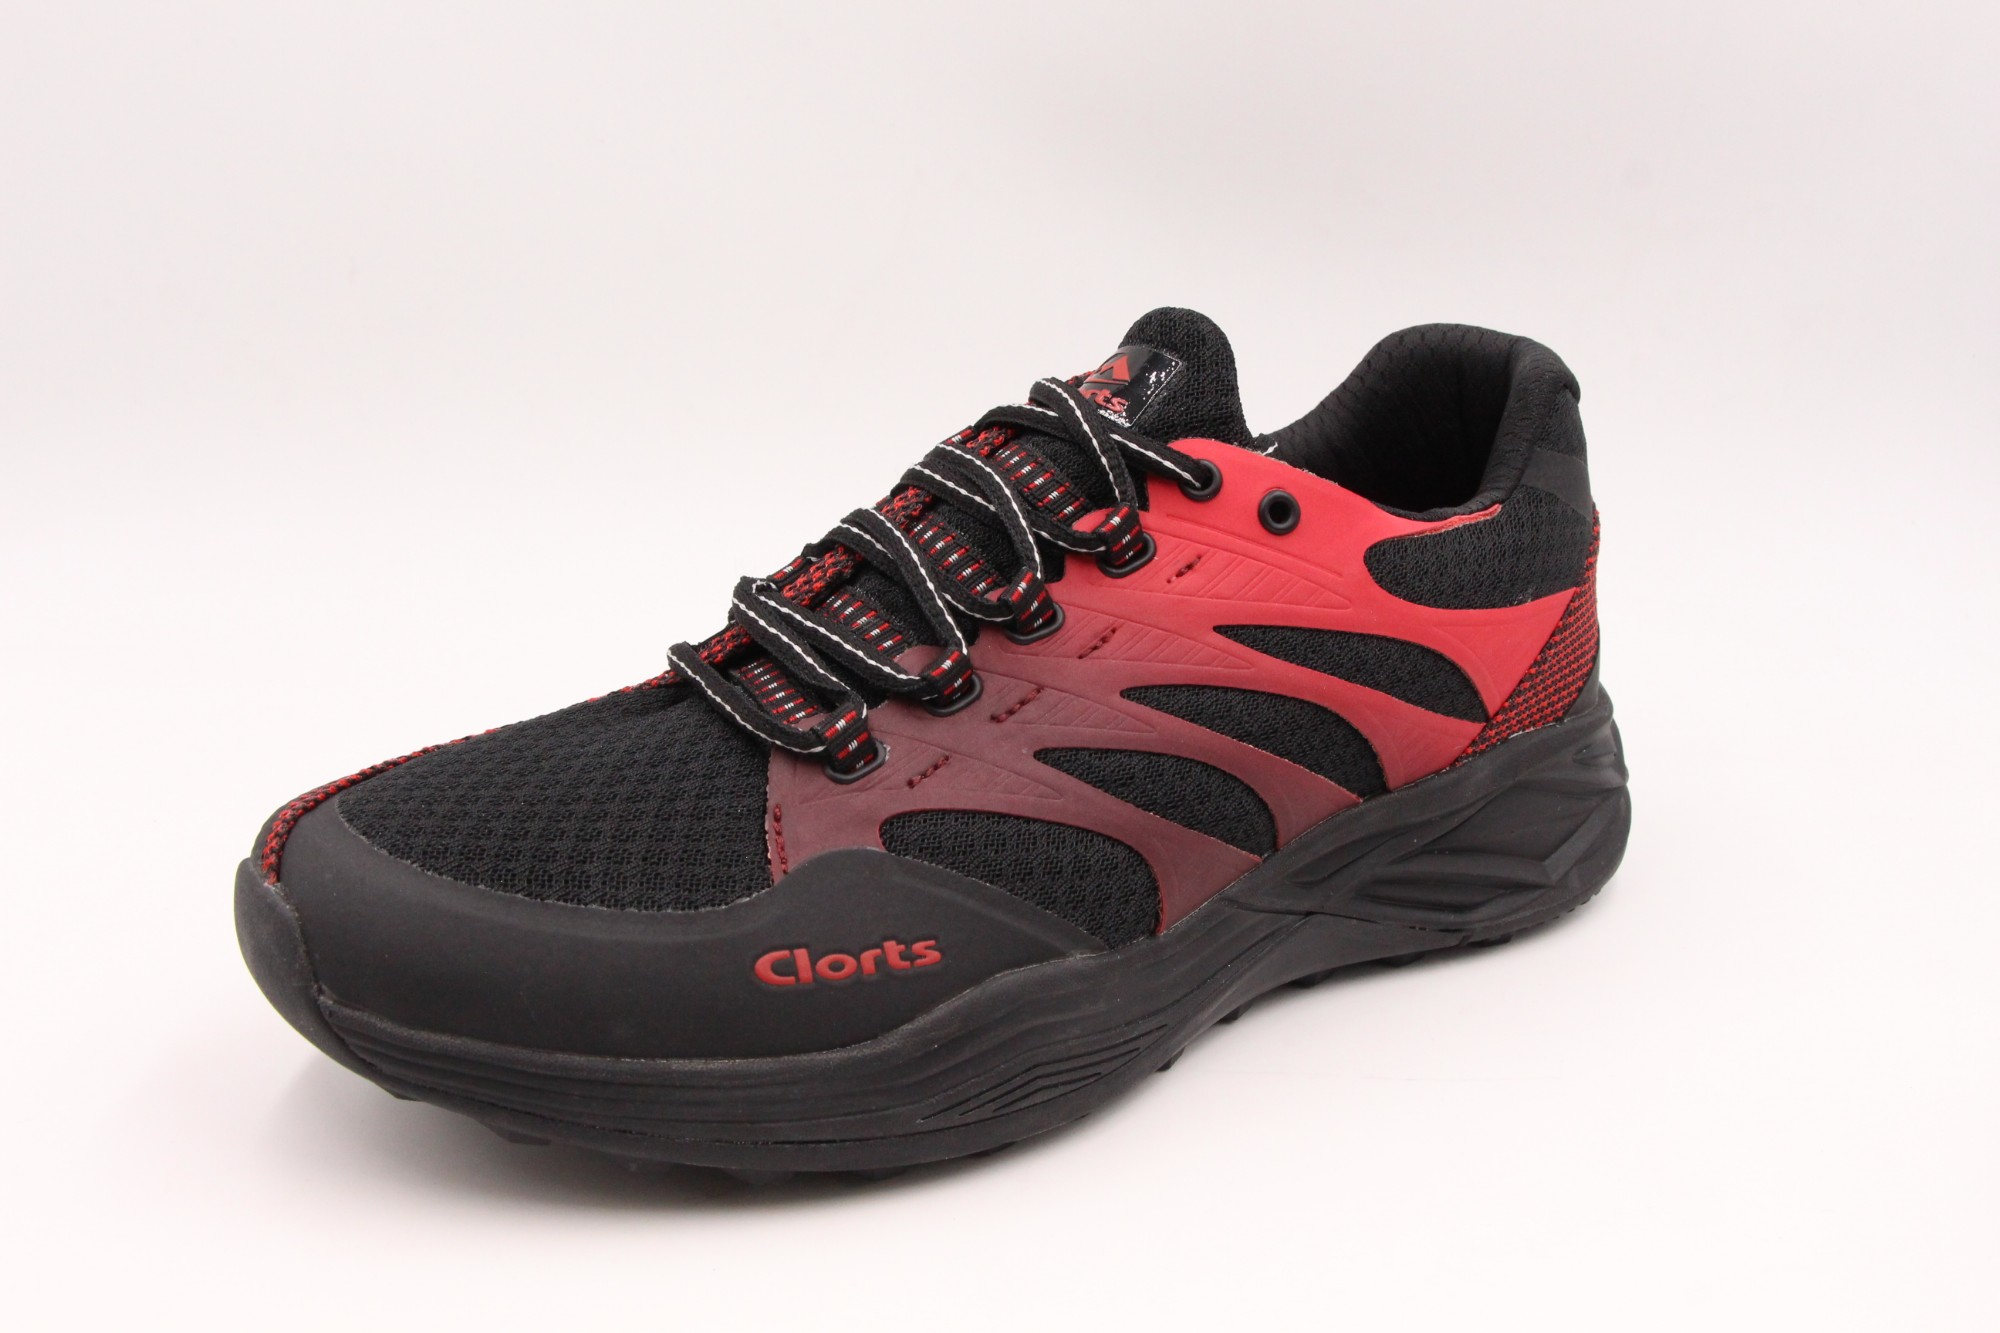 Clorts Mens Athlete Lightweight Running Shoes Dark-Red Manufacturers, Clorts Mens Athlete Lightweight Running Shoes Dark-Red Factory, Supply Clorts Mens Athlete Lightweight Running Shoes Dark-Red